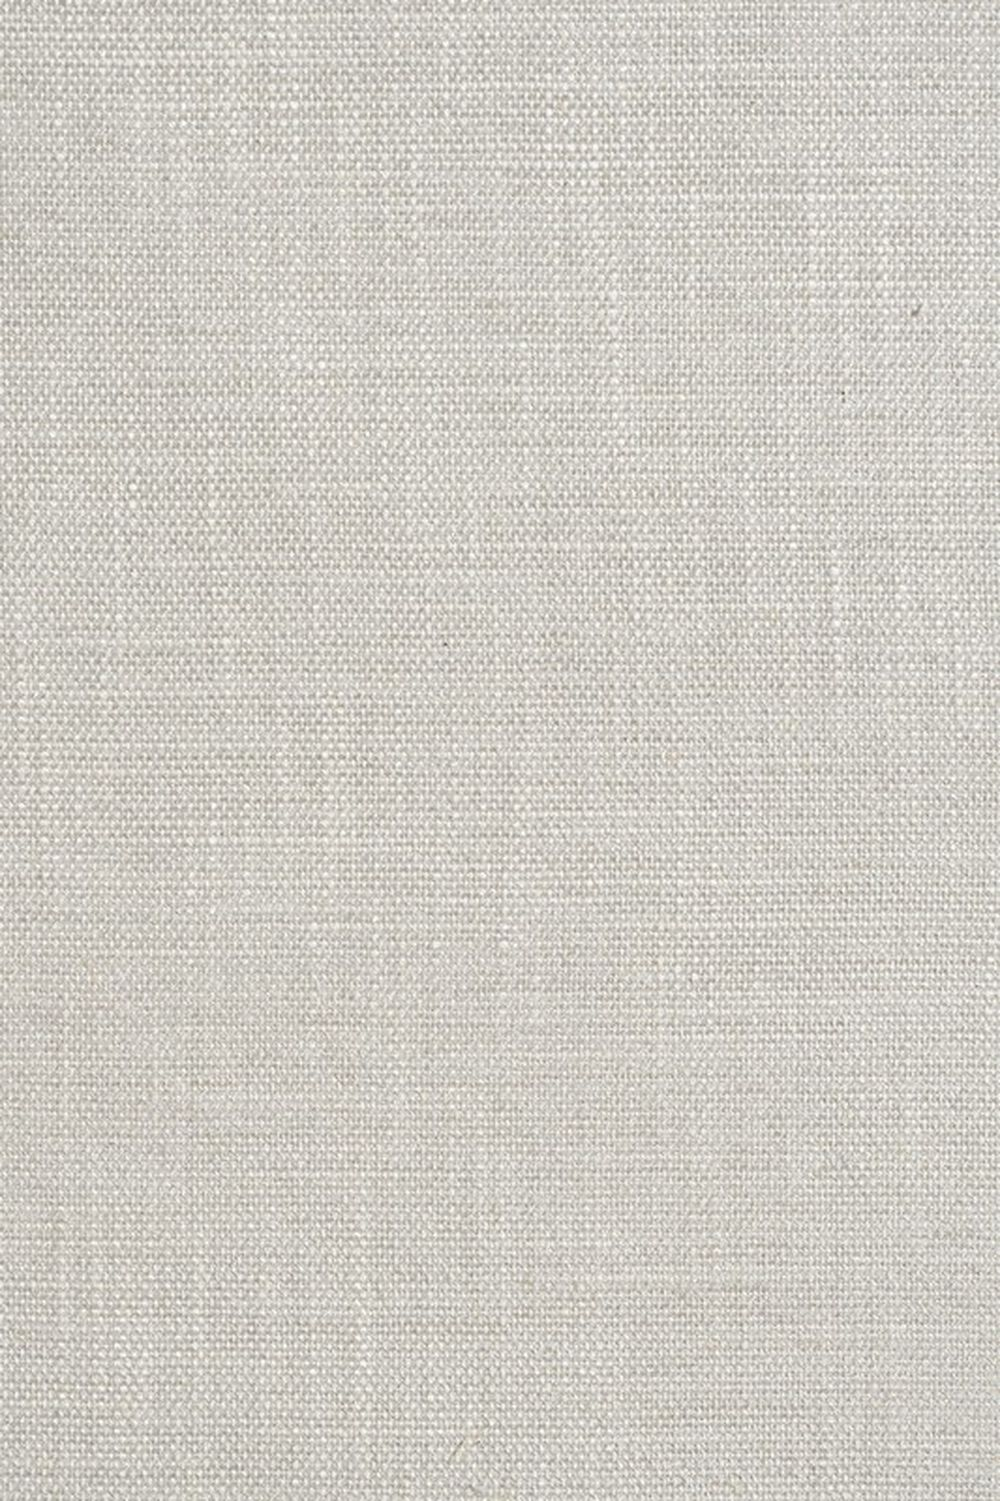 Photo of the fabric Sahel Chalk swatch by Mokum. Use for Upholstery Heavy Duty, Accessory. Style of Plain, Texture